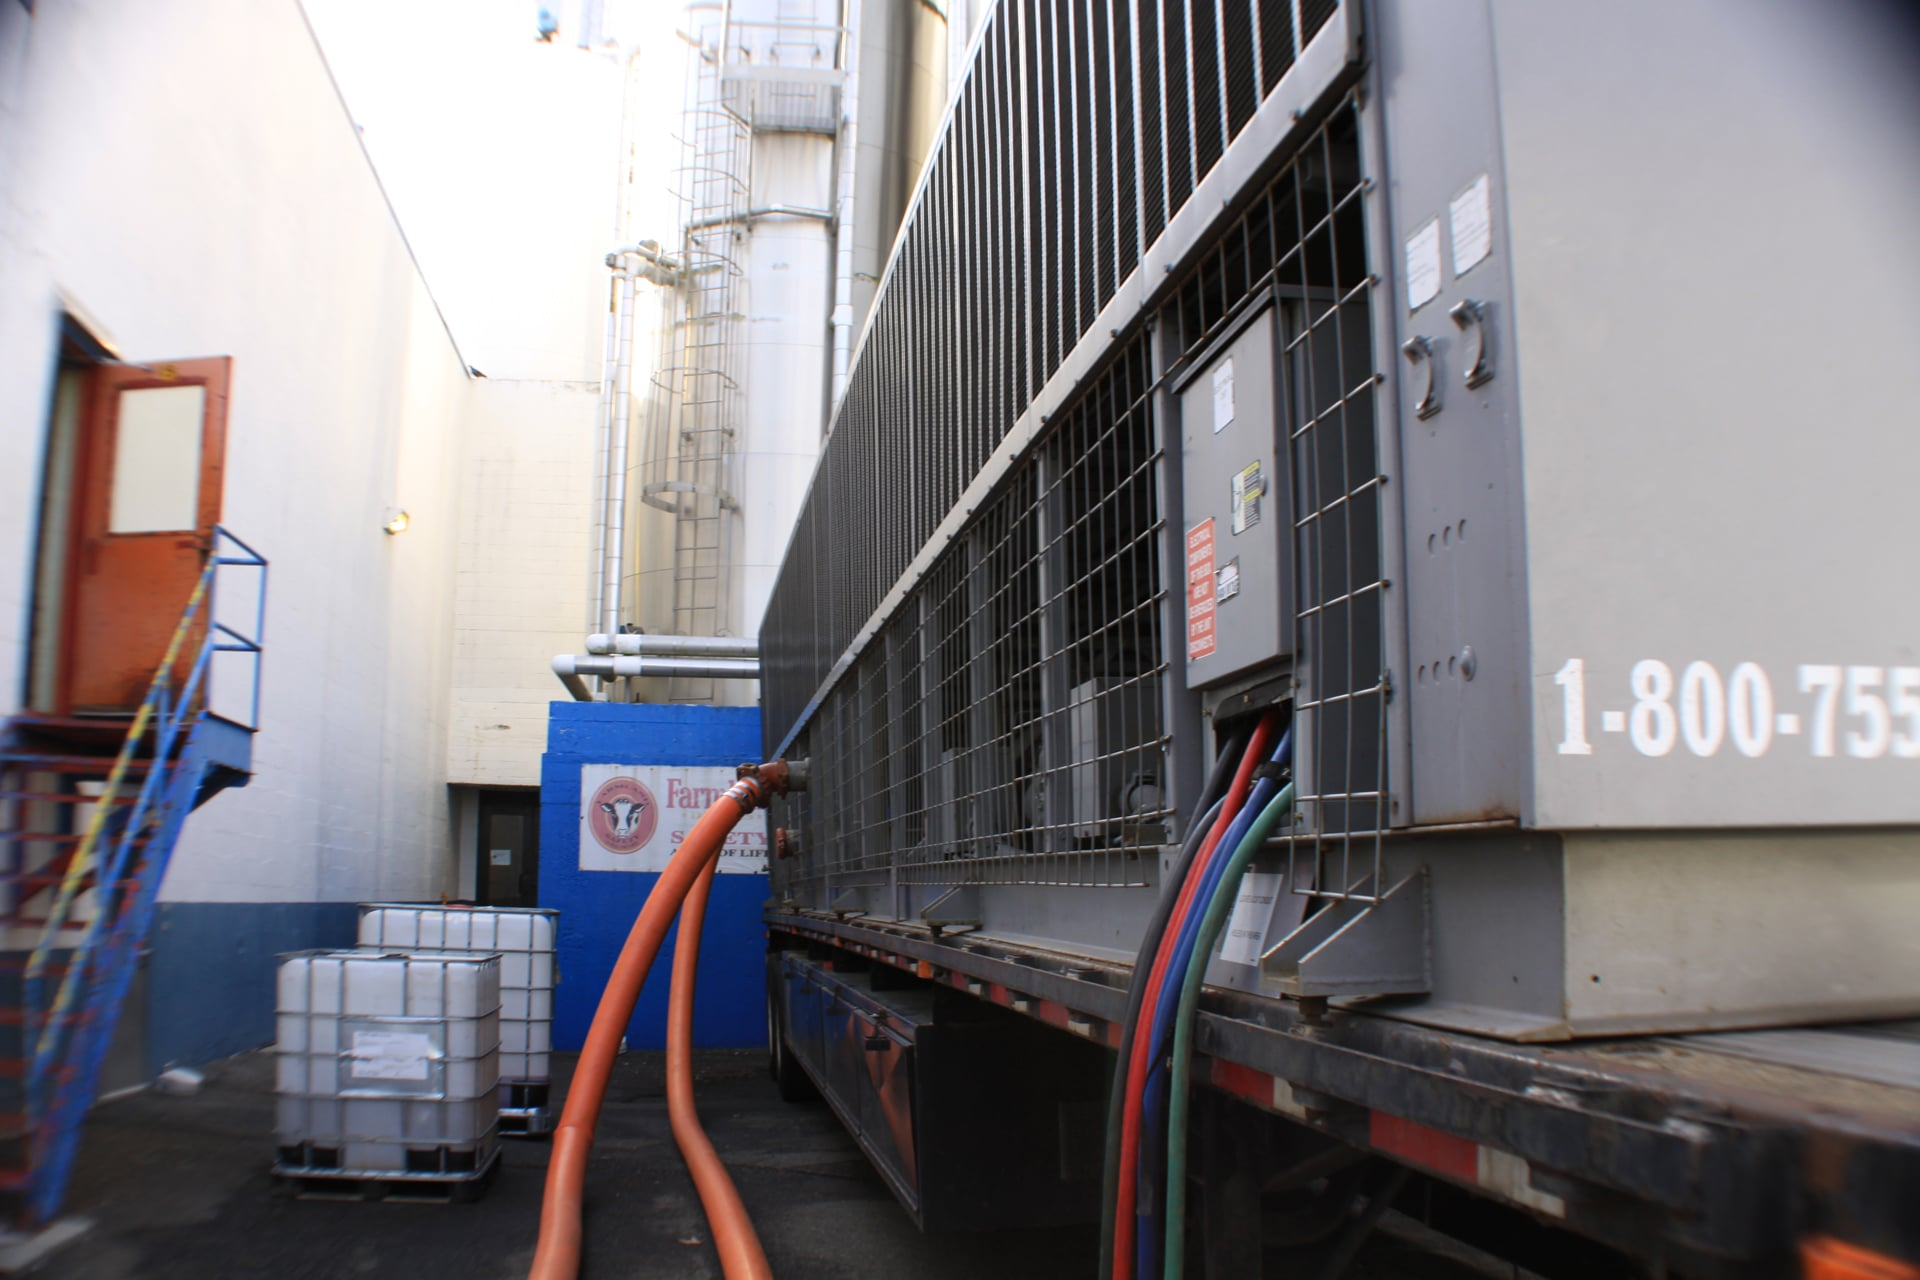 Temporary Chiller Monroe County NY, Air Cooled Chiller Rental Monroe County NY